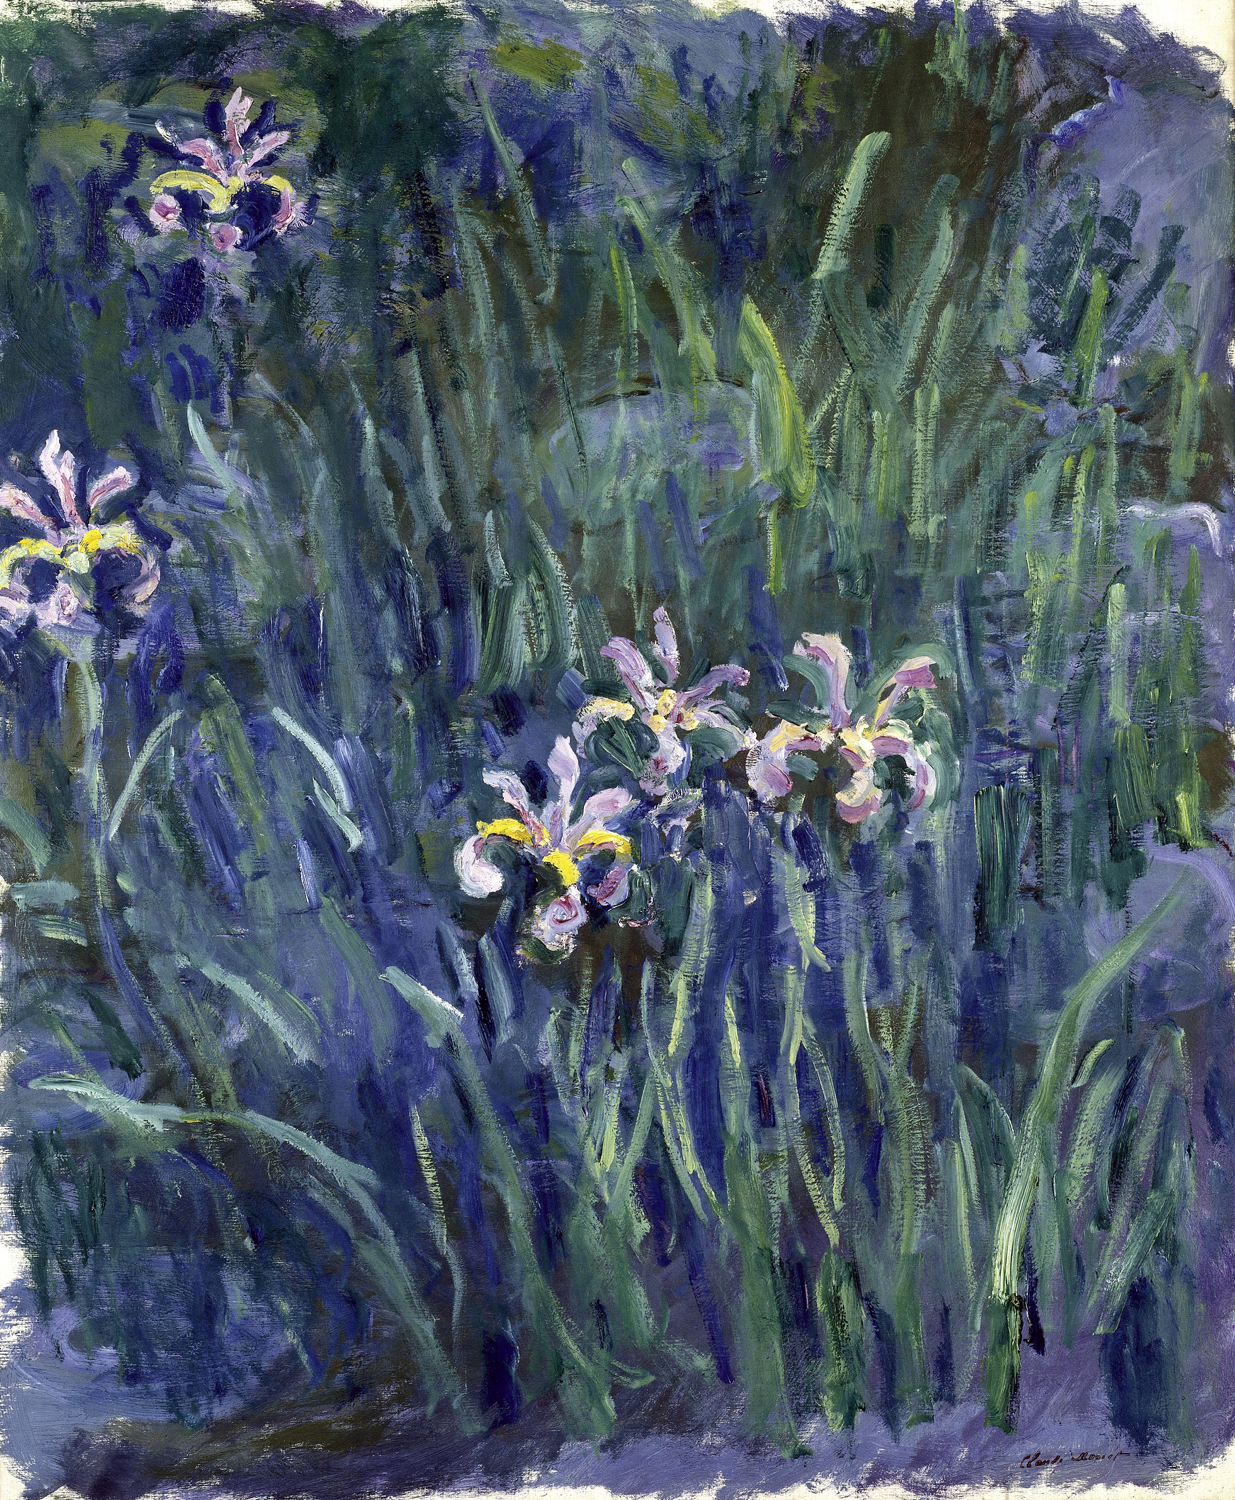 New York Botanical Garden Readies Monet-Themed Show, With Rarely Seen  Painting | Observer